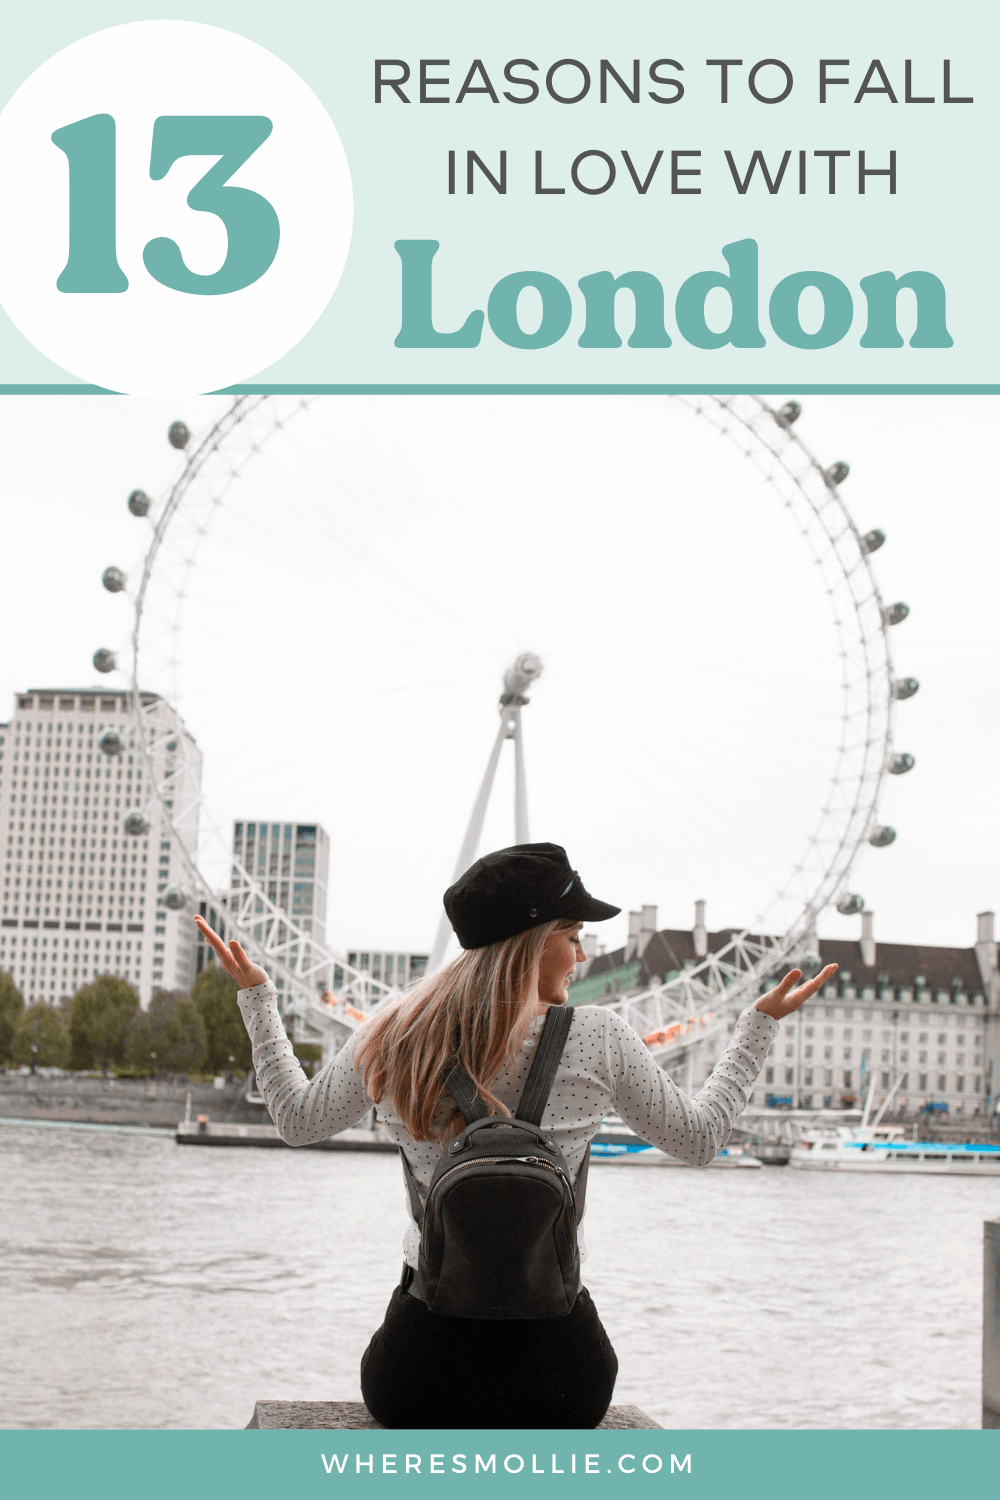 13 reasons why you'll fall in love with London